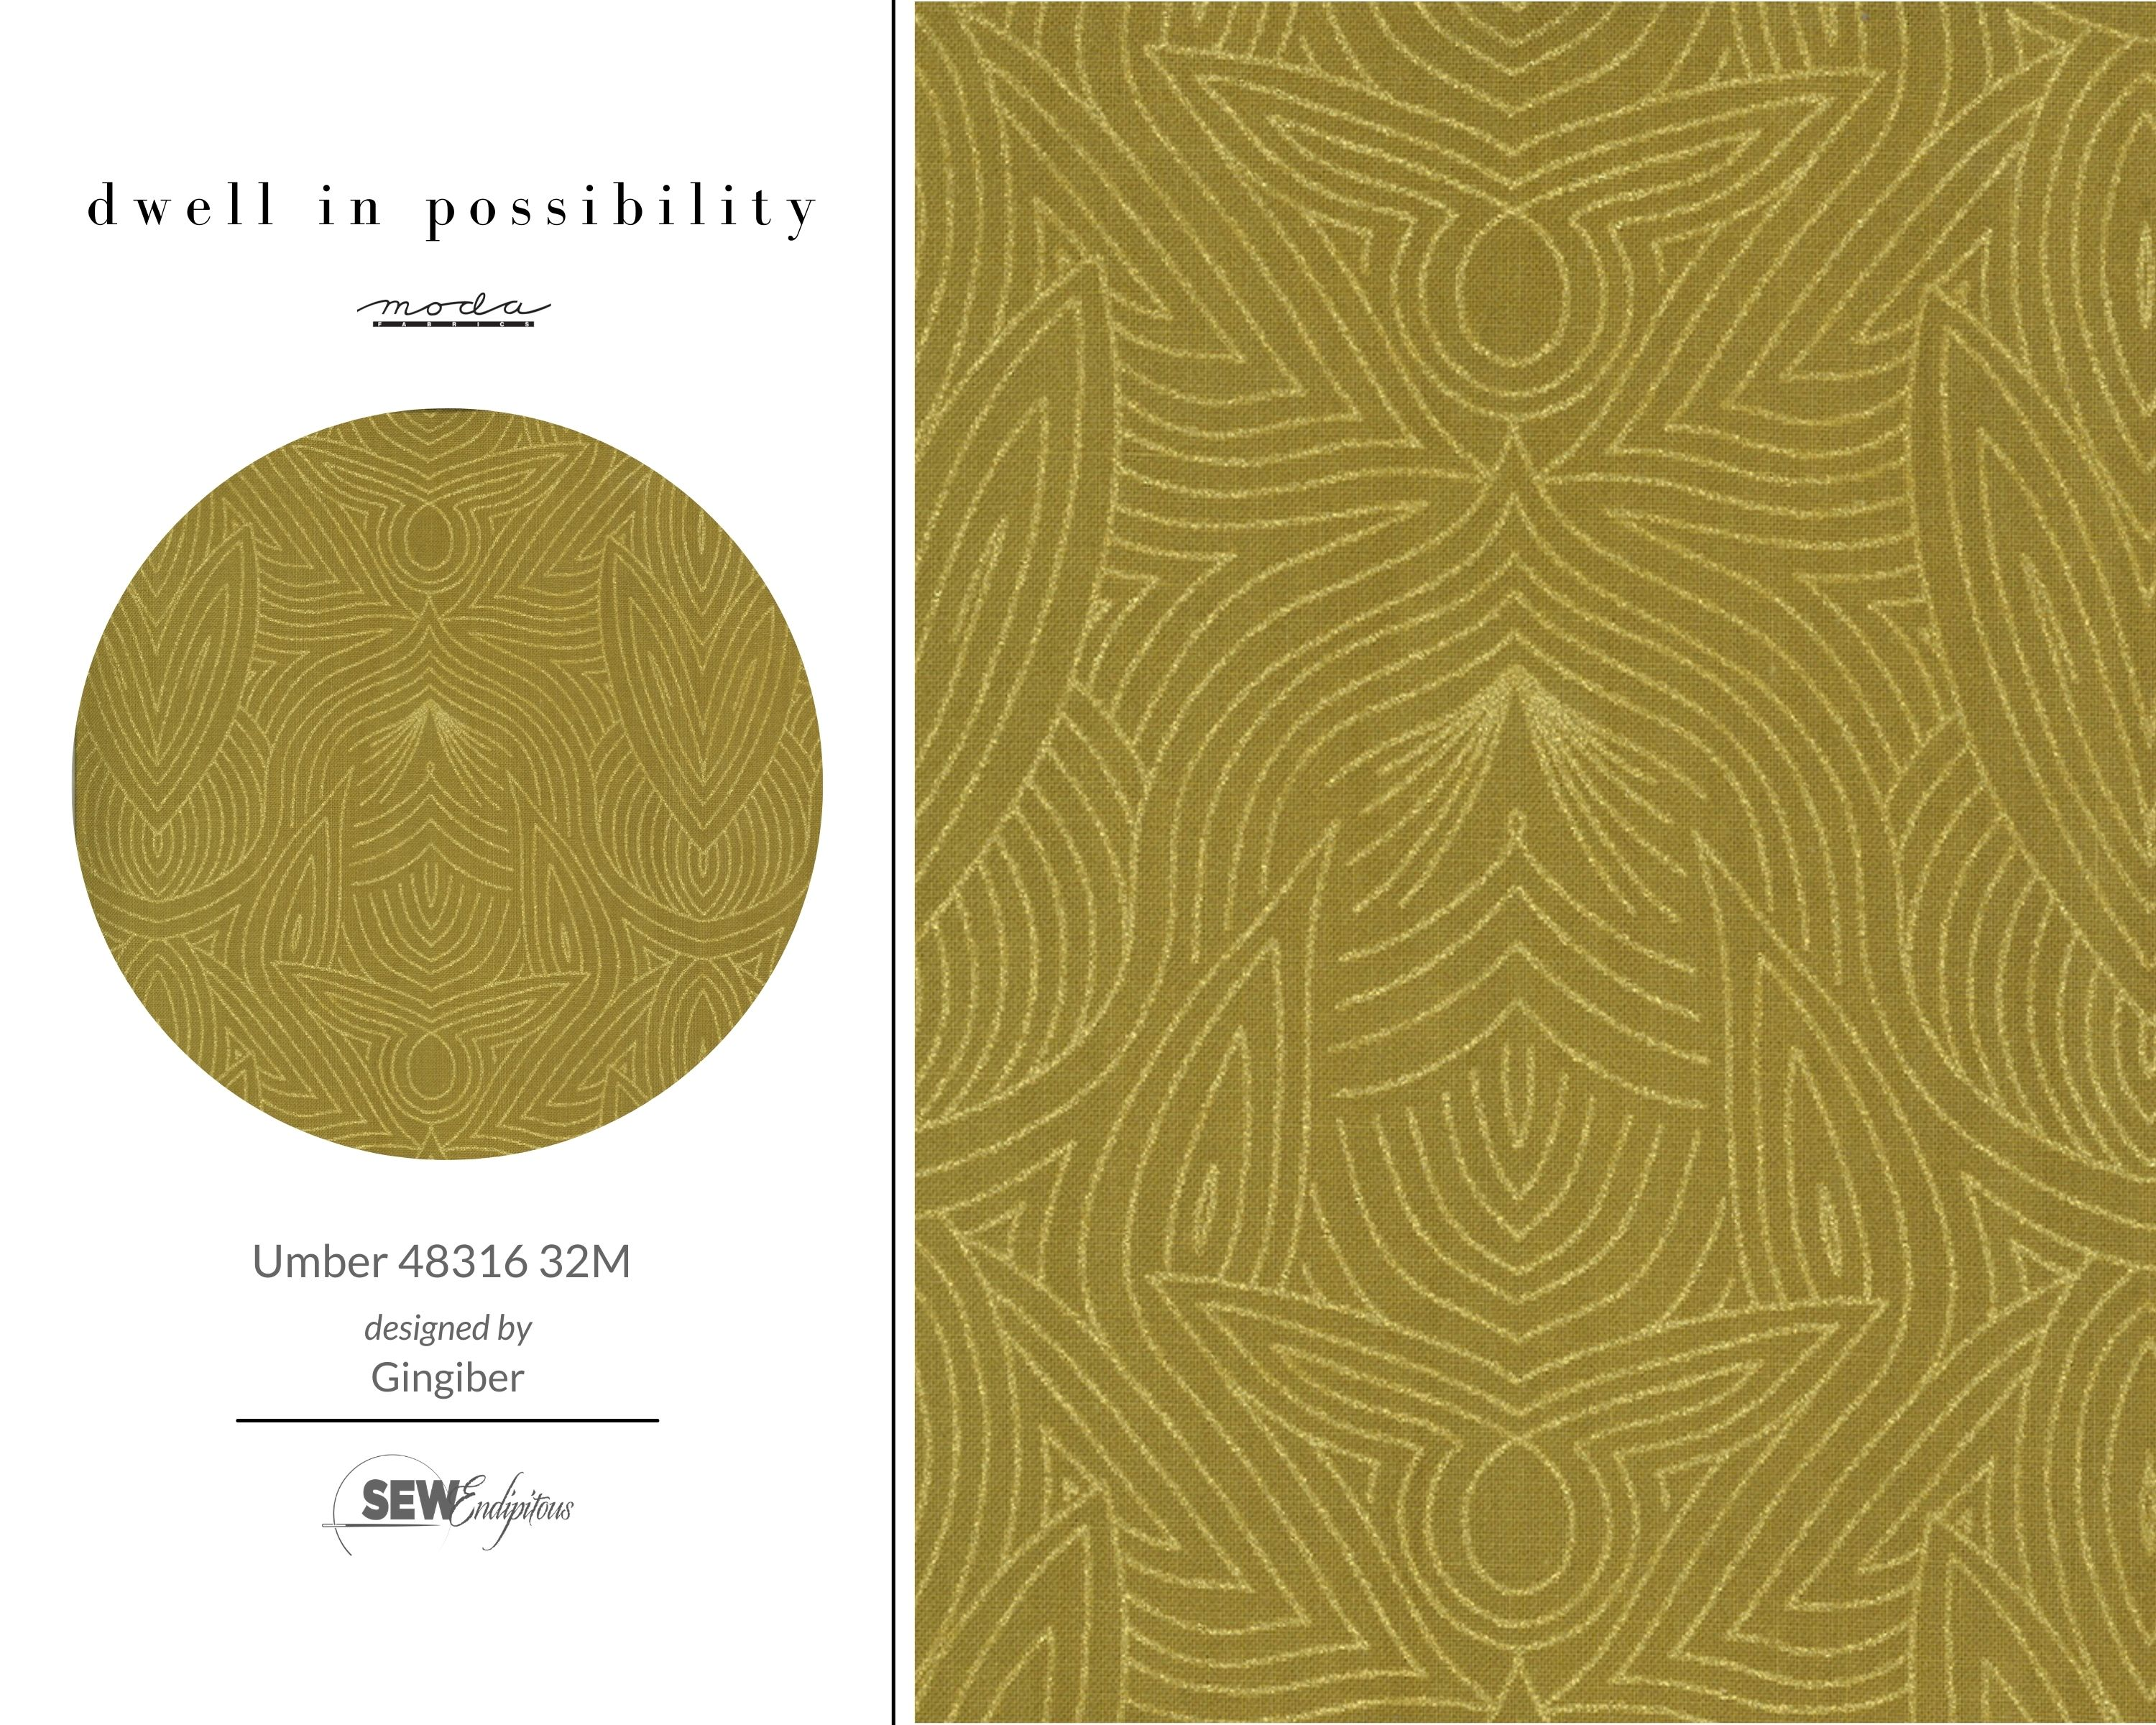 Dwell in Possibility - Umber 48316 32M Metallic